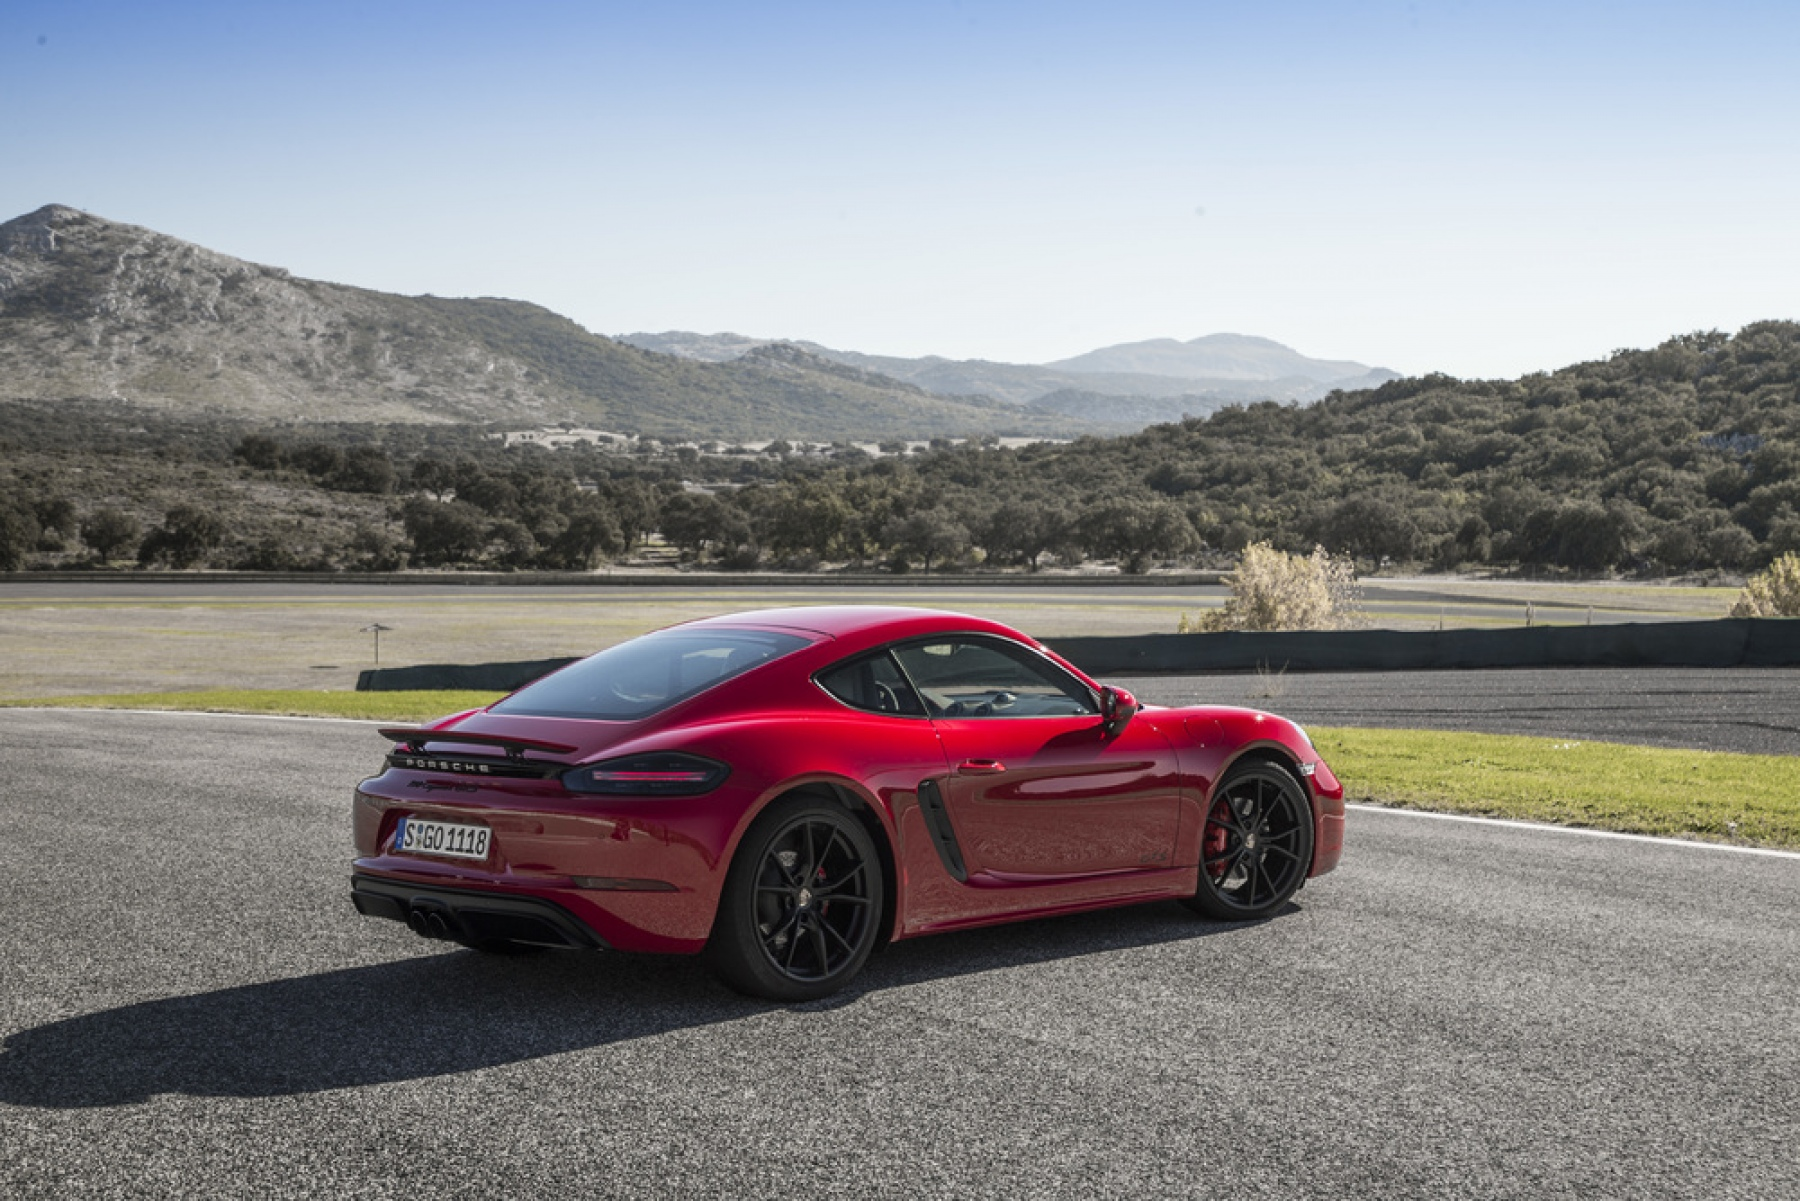 718 cayman gts carmine red the new 718 boxster gts and 718 cayman gts. Black Bedroom Furniture Sets. Home Design Ideas